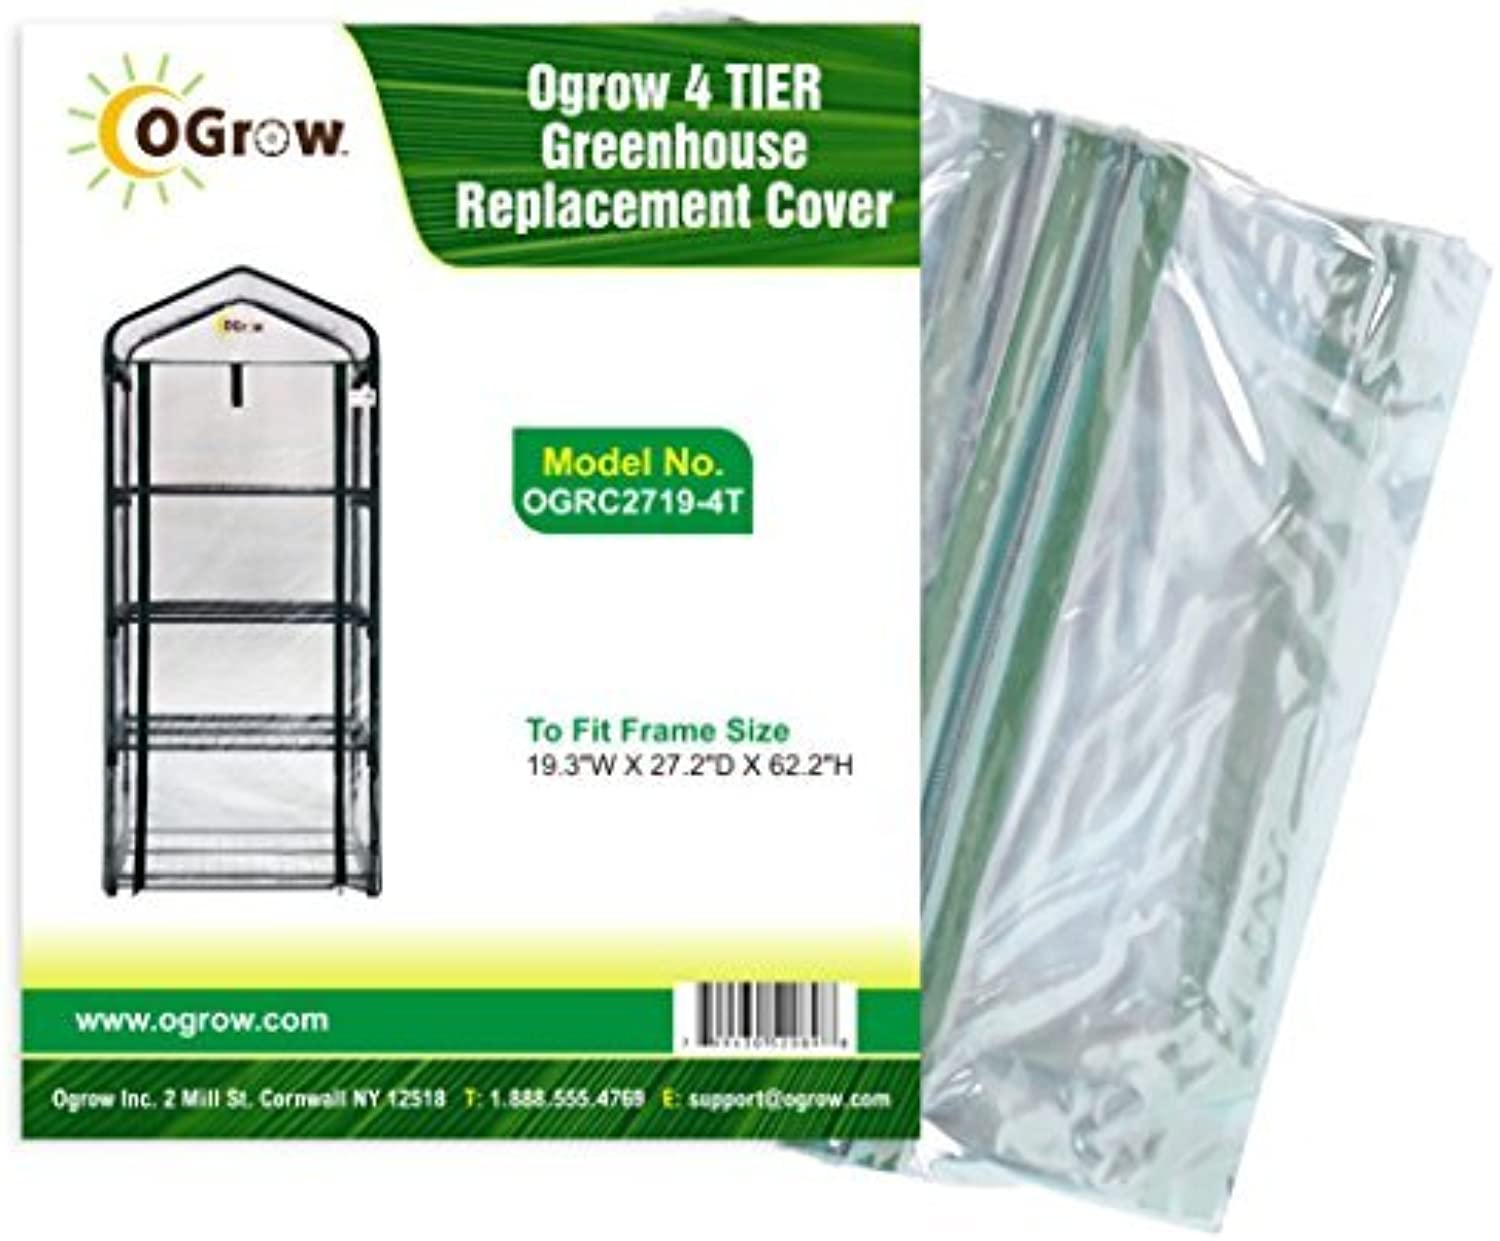 OGrow 19.3 x 27.2 x 62.2-Inch 4-Tier Grünhouse Replacement Cover by OGrow